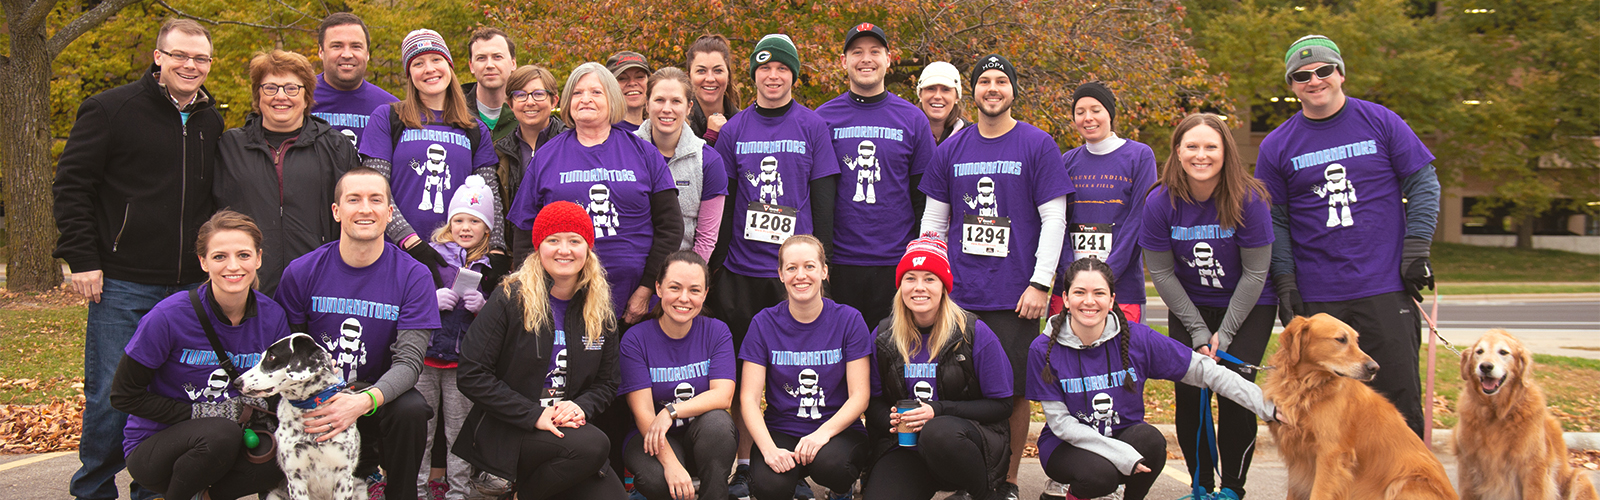 A team of UW Carbone's Race for Research participants and three of their dogs, mostly in dark purple, poses for a photo.